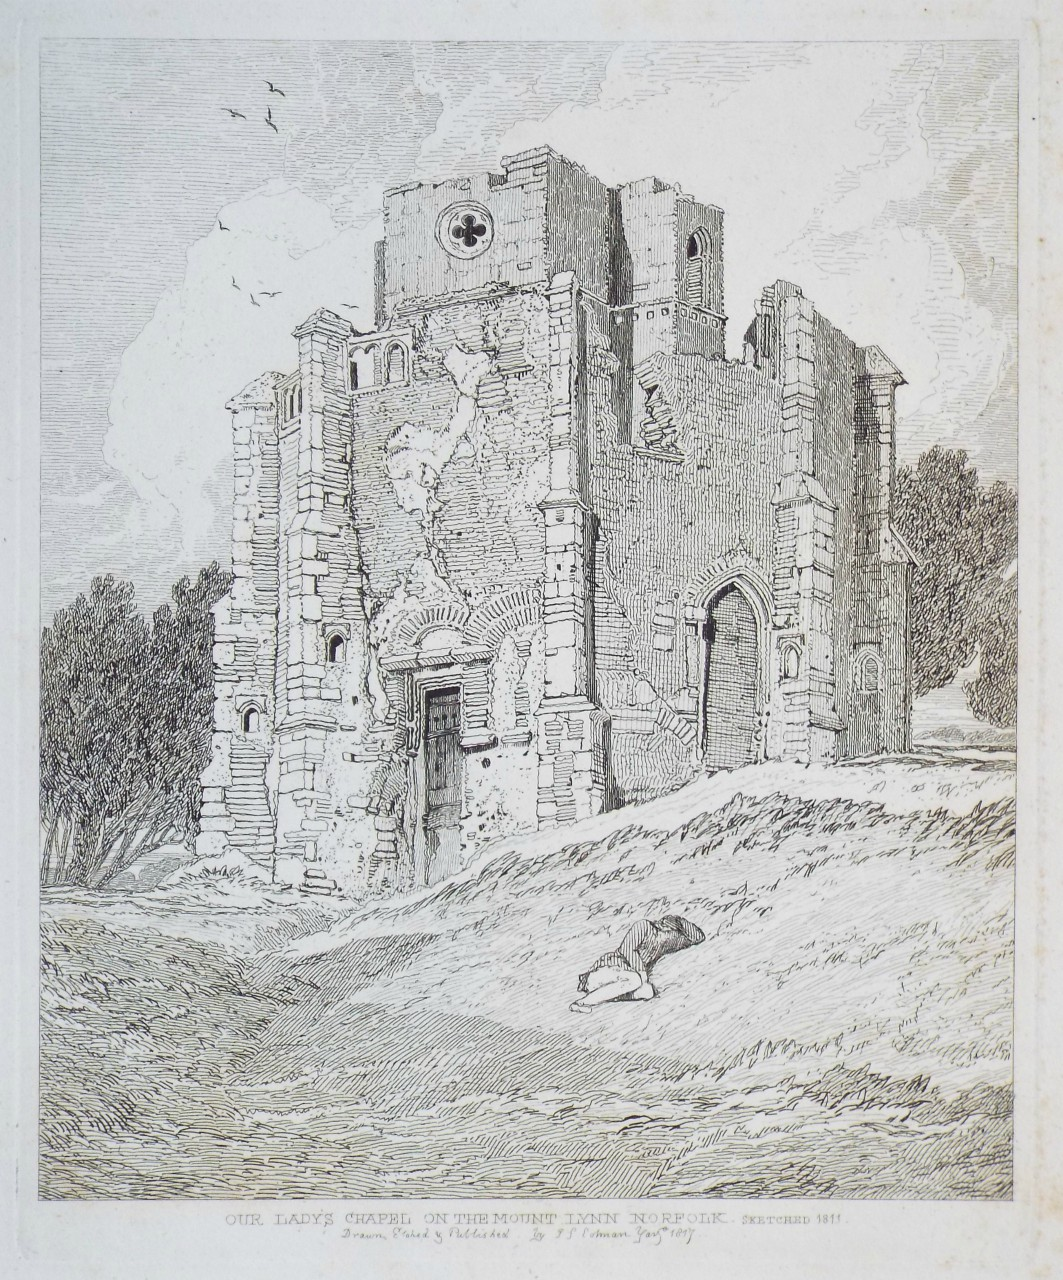 Etching - The Lady's Chapel on the Mount Lynn Norfolk Sketched 1811 - Cotman